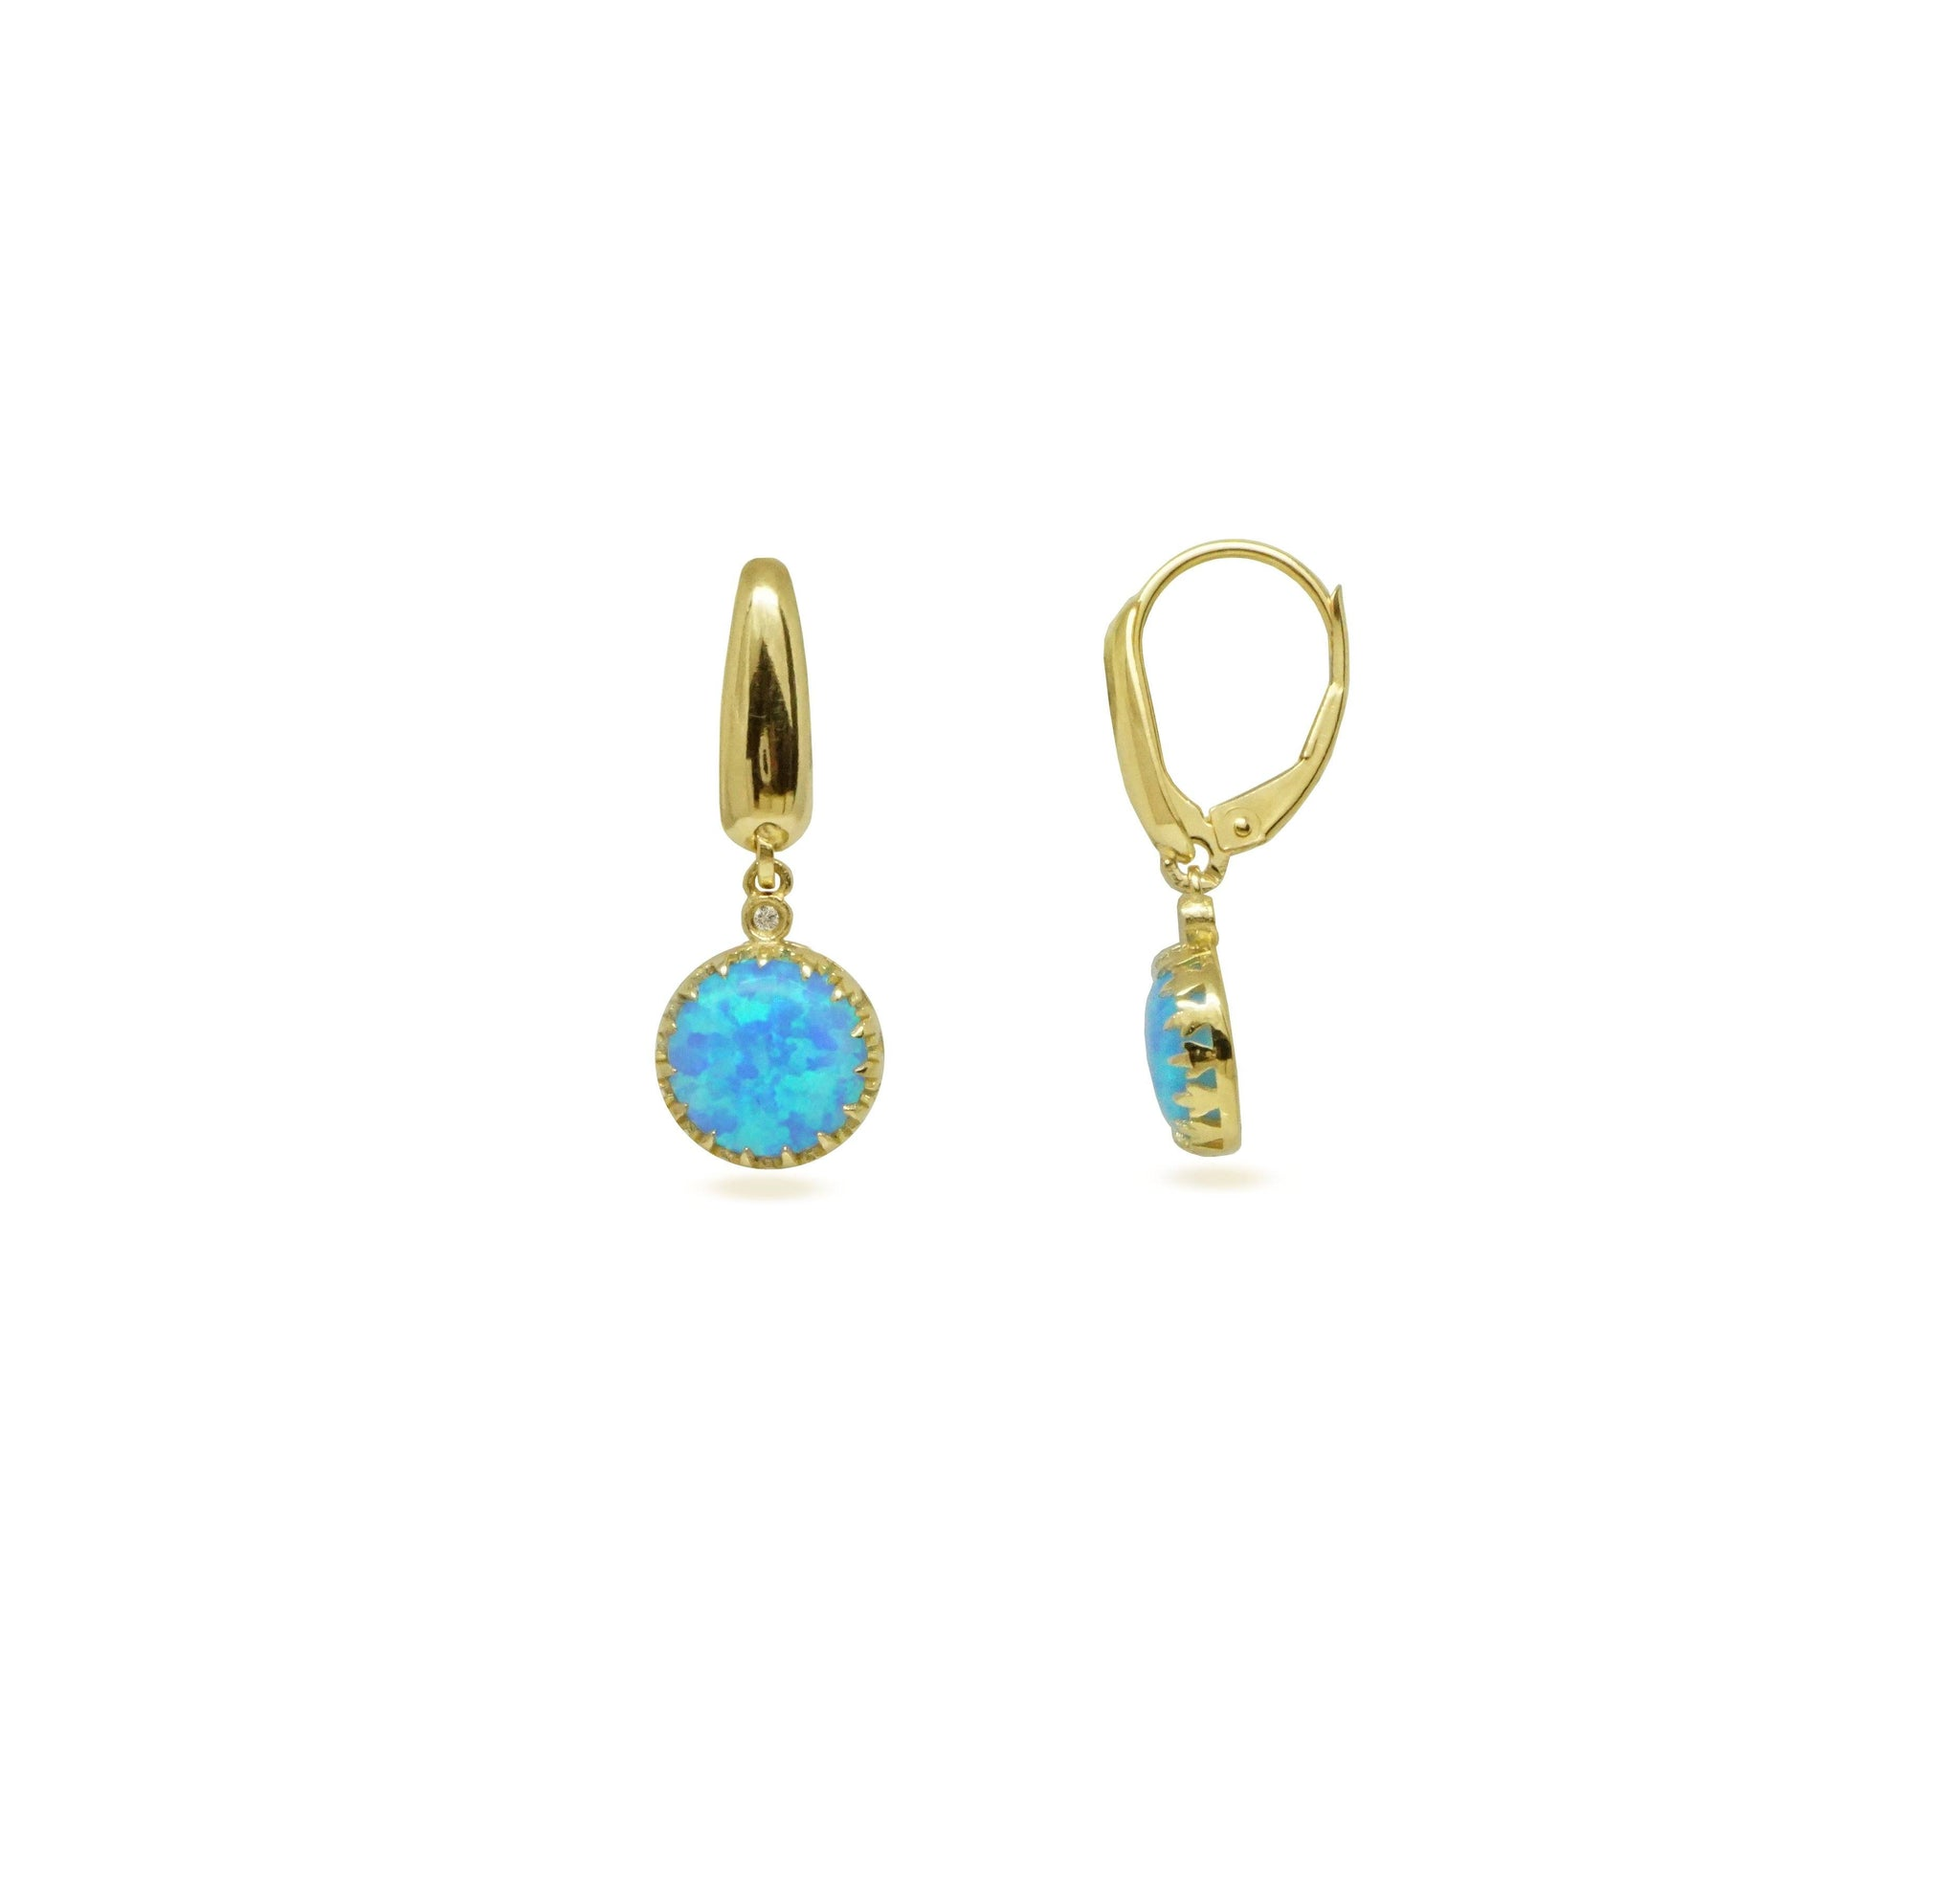 2cfabc817 Blue Opal and Diamond Stud Earrings Set in 14K Solid GoldEarrings